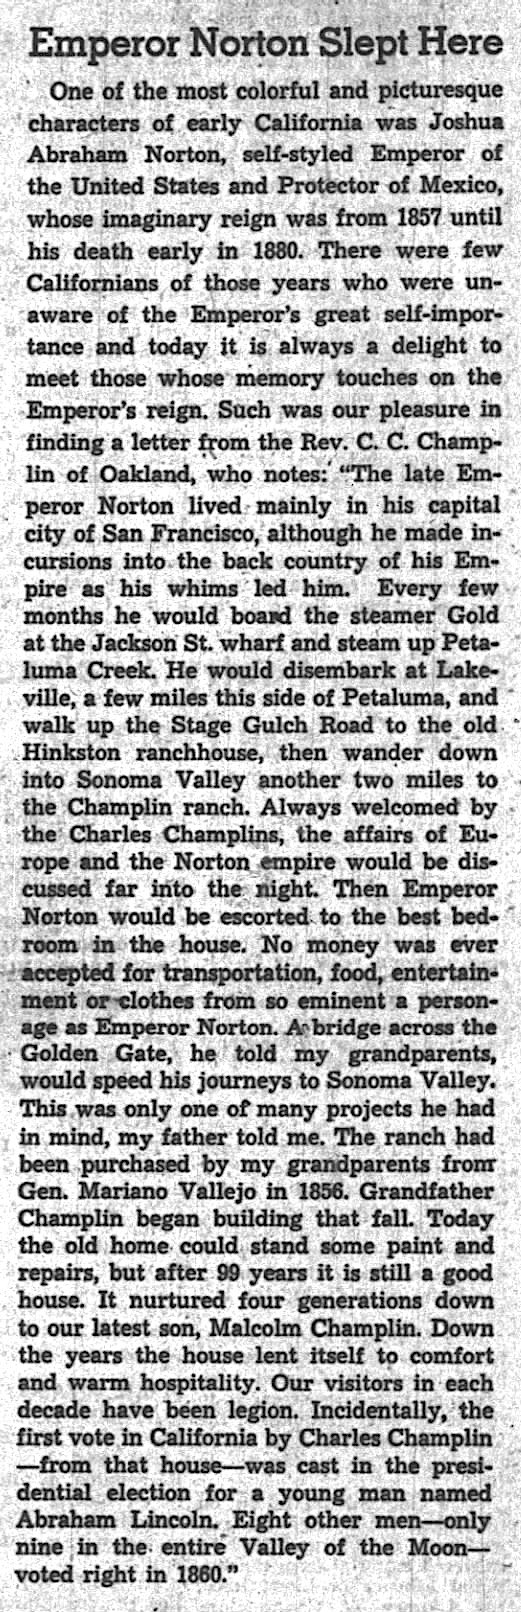 """Emperor Norton Slept Here,""   Oakland Tribune , 20 February 1955, p.59, col. 5. (For a view of the entire original page, click  here .) Source: Newspapers.com"